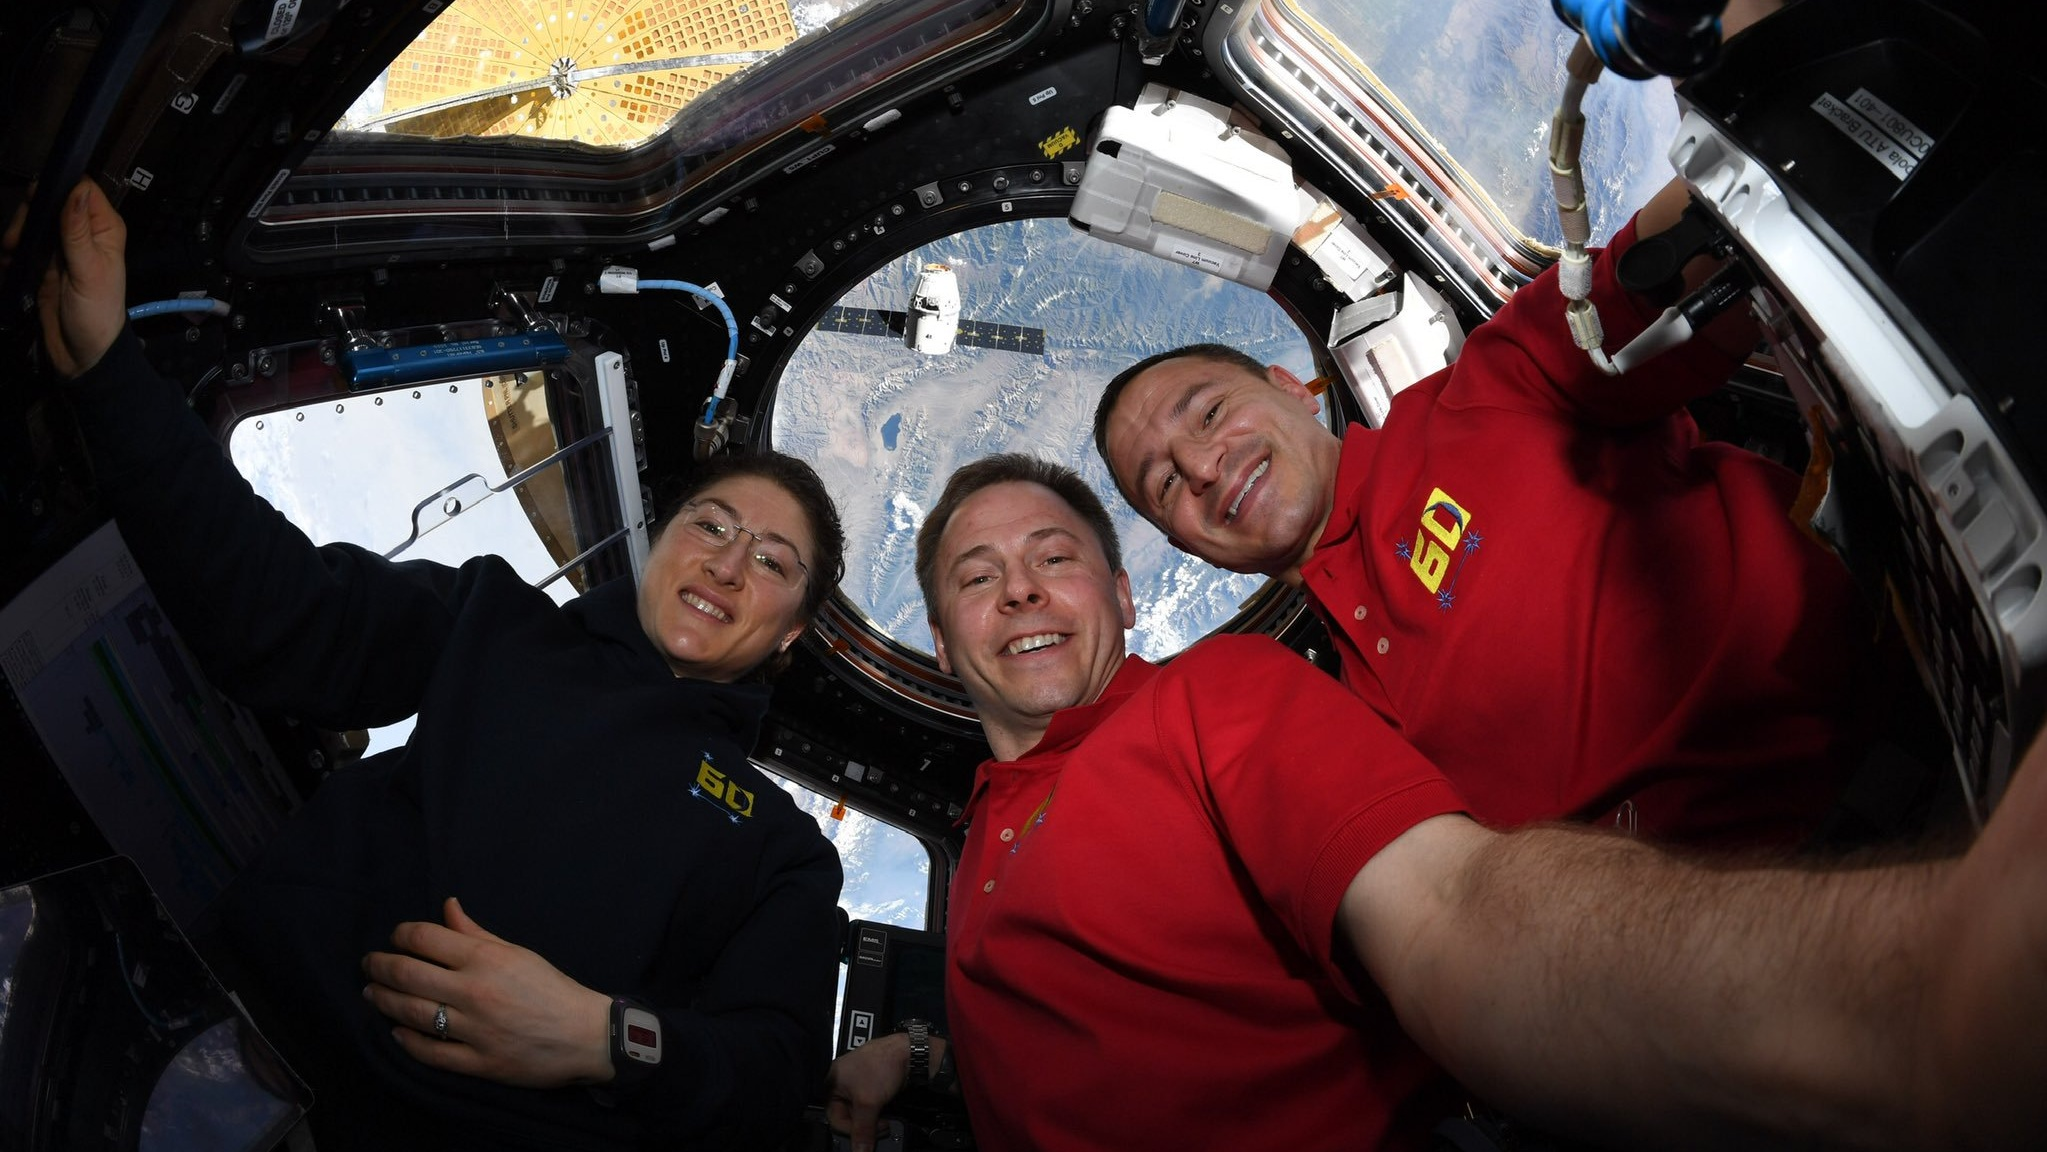 NASA astronauts Christina Koch, left, and Nick Hague, center, as well as European Space Agency astronaut Luca Parmitano, in the Cupola window with CRS-18 Dragon approaching beneath the space station. Credit: NASA